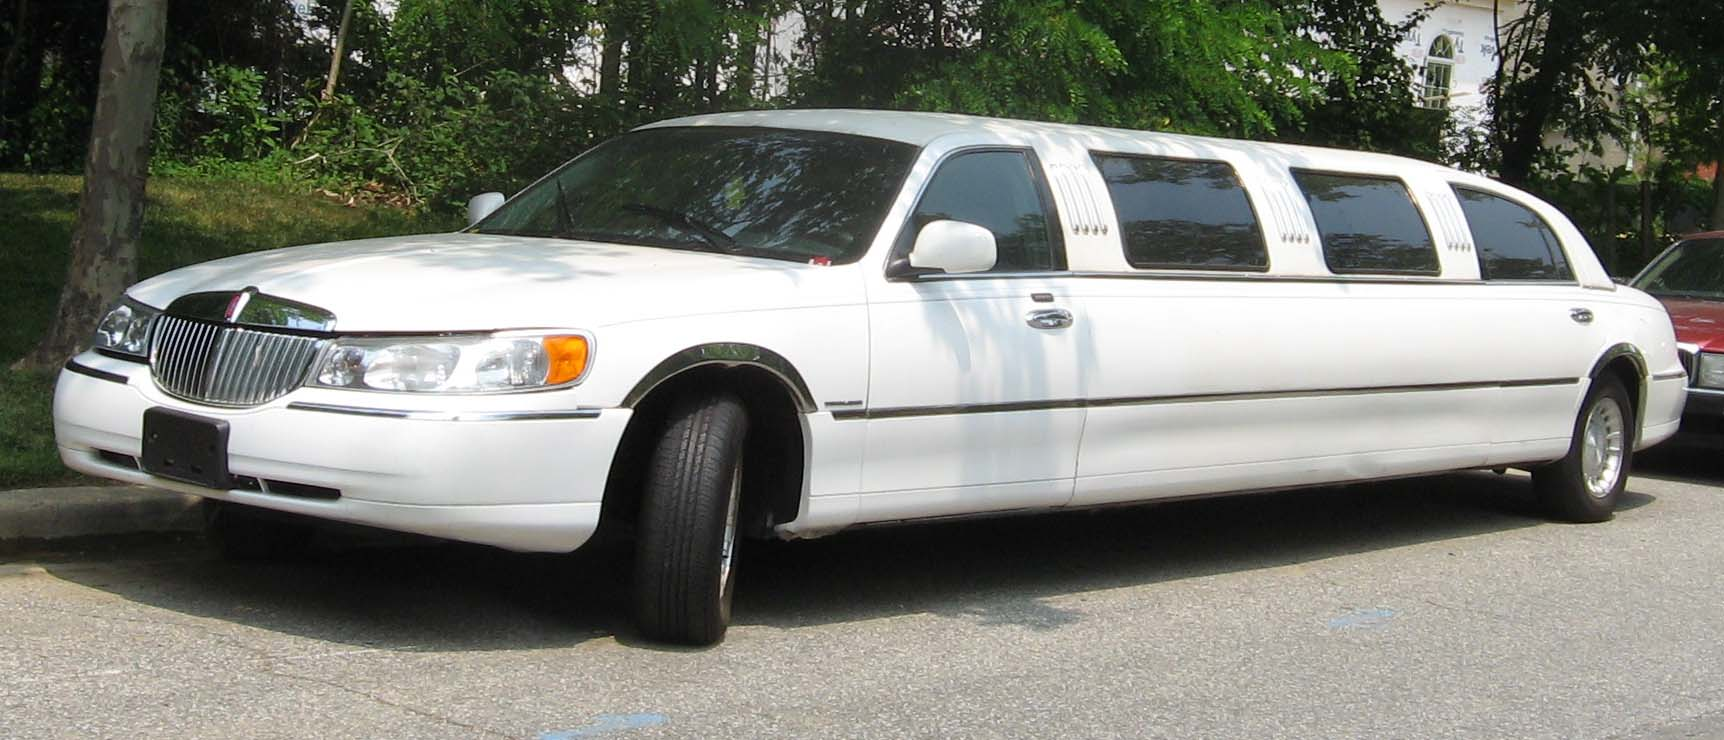 describe a limousine New limos available to rent for airport service, wedding limo service or prom service best limo service nashville tn describe your image here fallen apples.